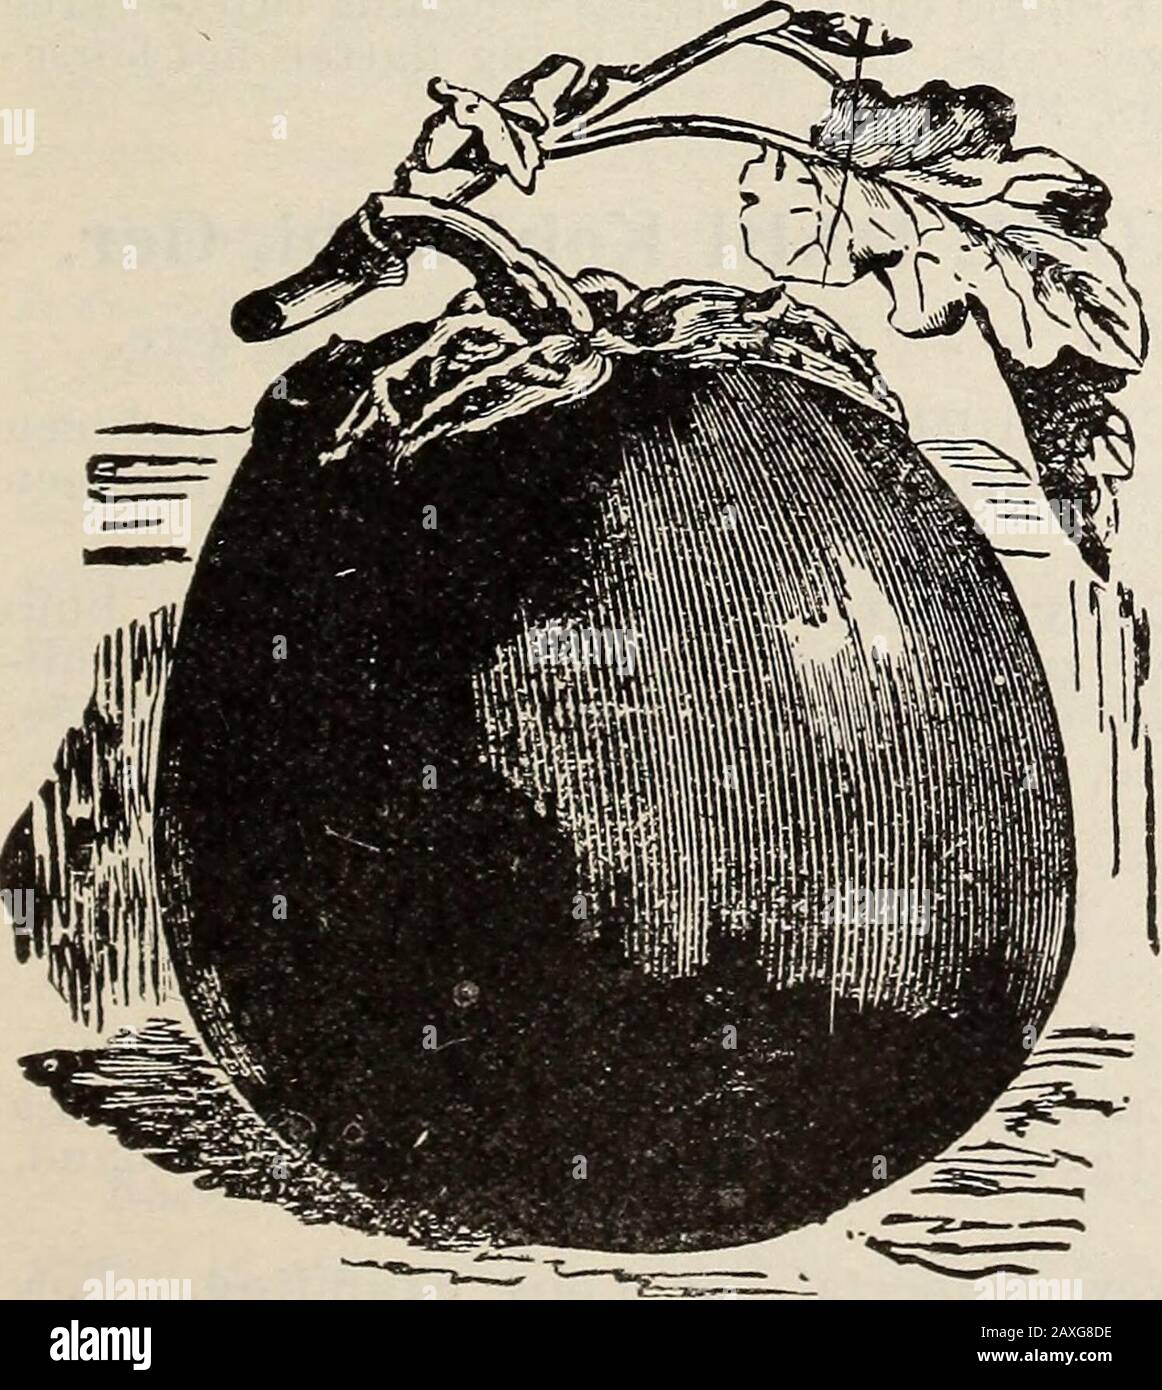 Mann's descriptive catalgoue : 1914 guide for the farm and garden . BLACK BEAUTY EGG PLANT EGG PLANT Eierfrucht, Ger. 1 oz. will produce 1,000 plants.Sow in March in hot-bed, and transplant when two incheshigh into a second hot-bed, or let them remain and thin out tofour inches apart. When the weather becomes settled, trans-plant into the open ground three feet apart each way. Goodculture is quite as important as good seed; work the ground deep;make it rich with well rotted manure and hoe often. New York Improved Spineless.—Best NewJersey gardeners selection. Oval shape, thorn-less, dark purpl Stock Photo